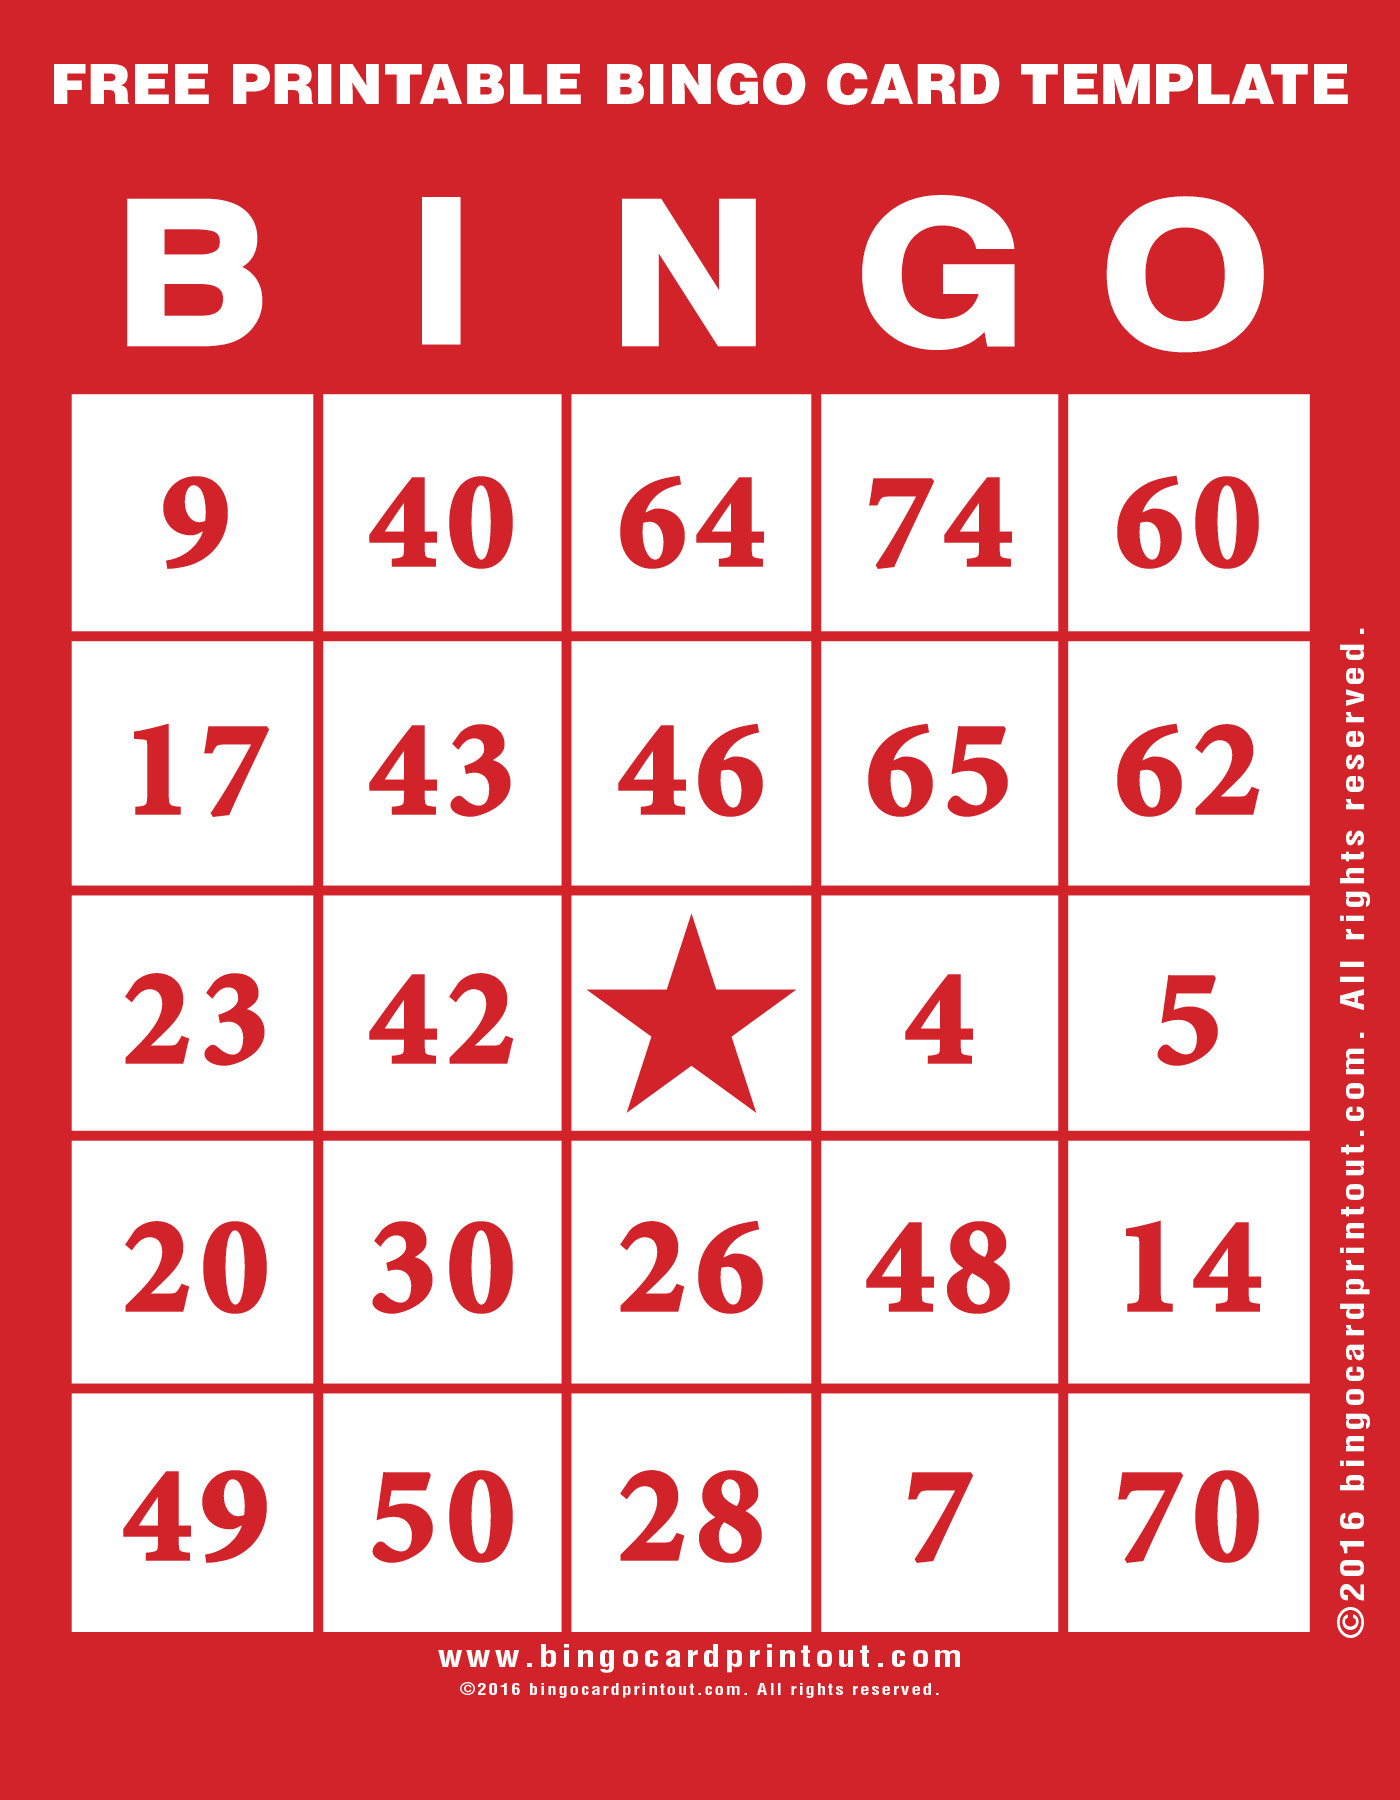 Free Printable Bingo Card Template - Bingocardprintout